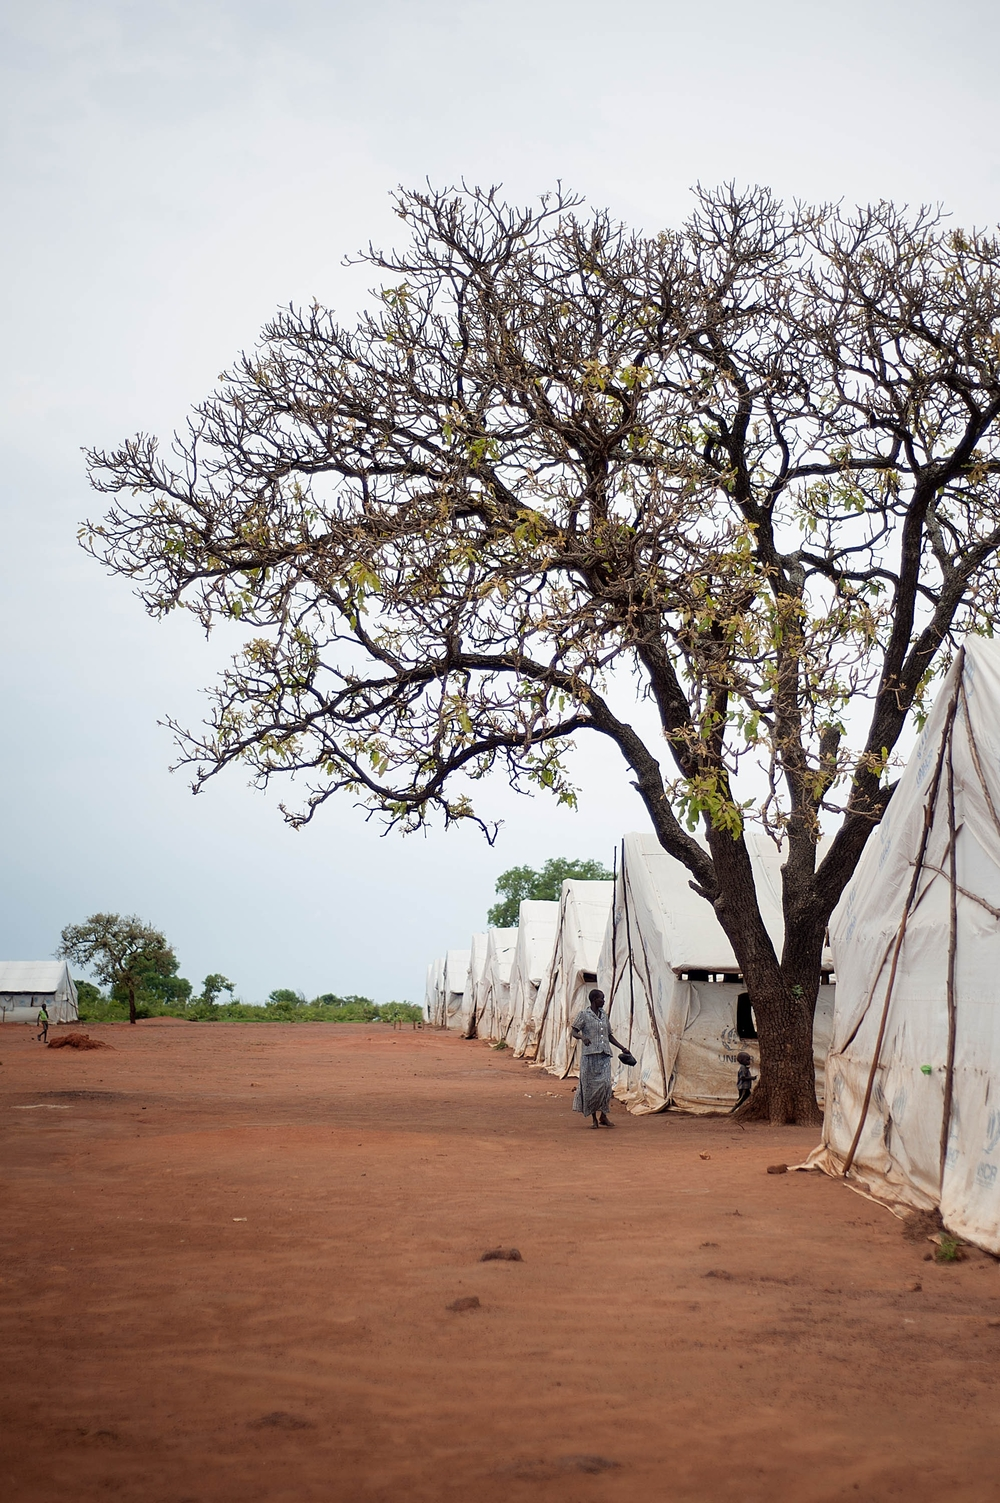 Nymanzi transit camp in Uganda for South Sudanese refugees